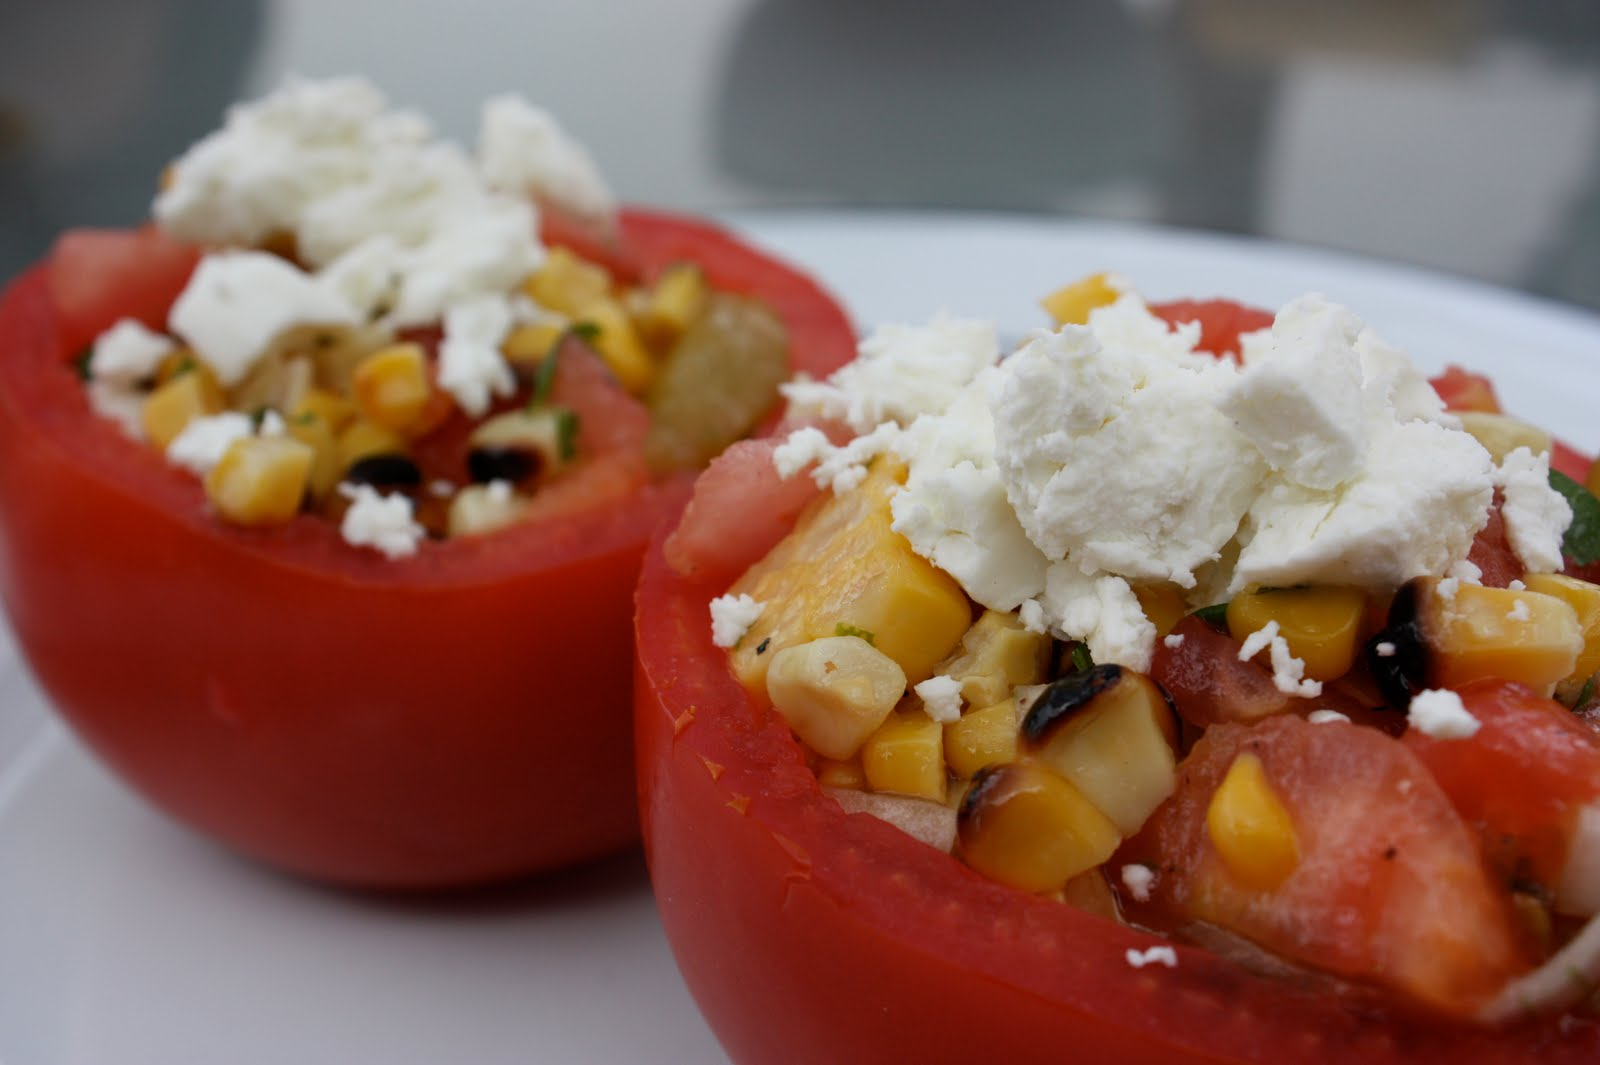 Tomatoes Stuffed with Corn Chili recommend